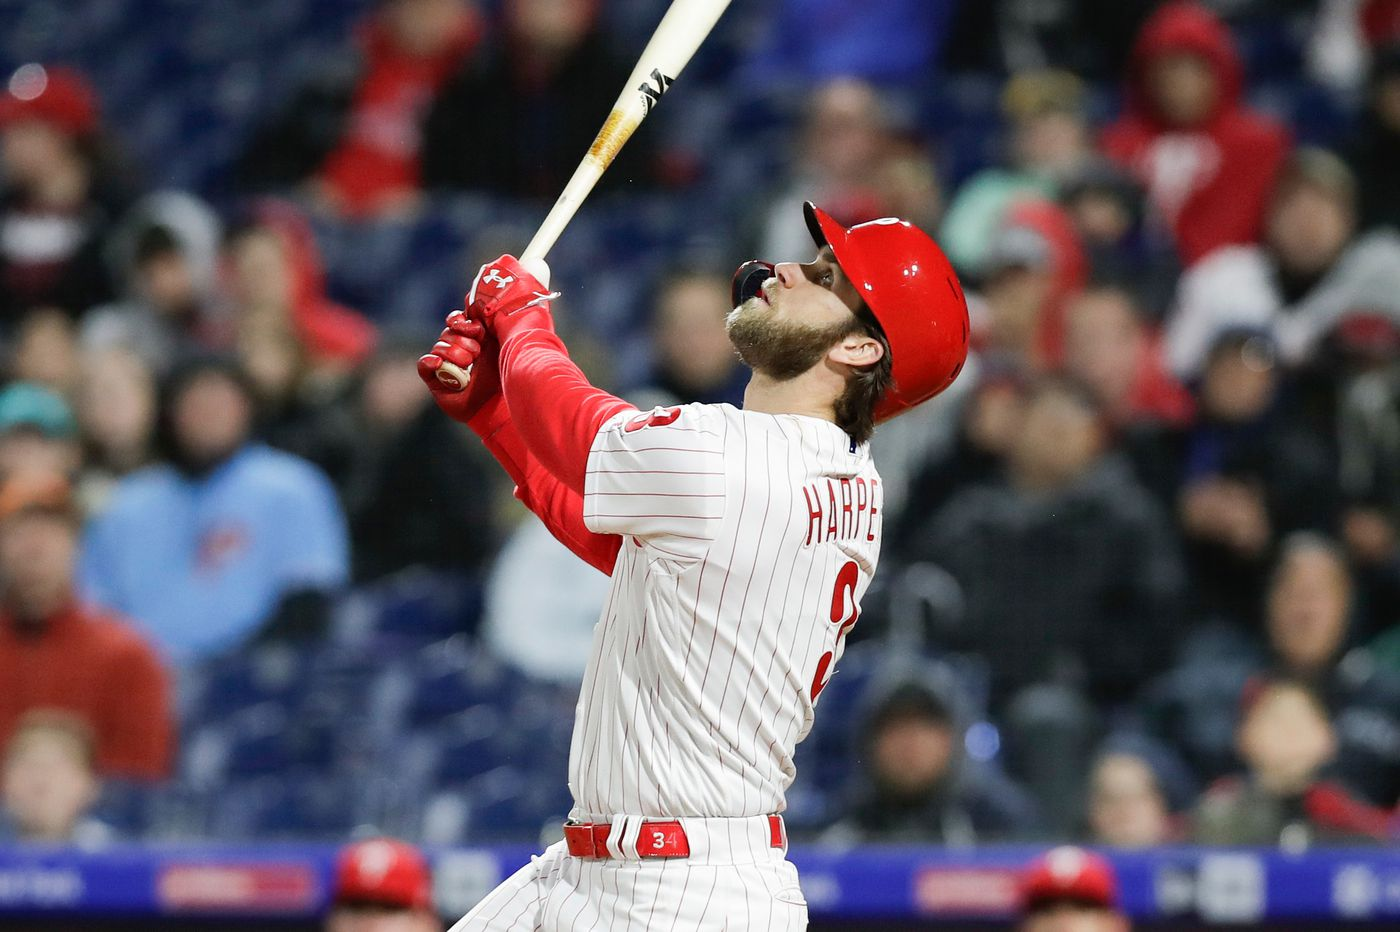 Phillies moved Bryce Harper to No. 2 in batting order to try to snap his funk